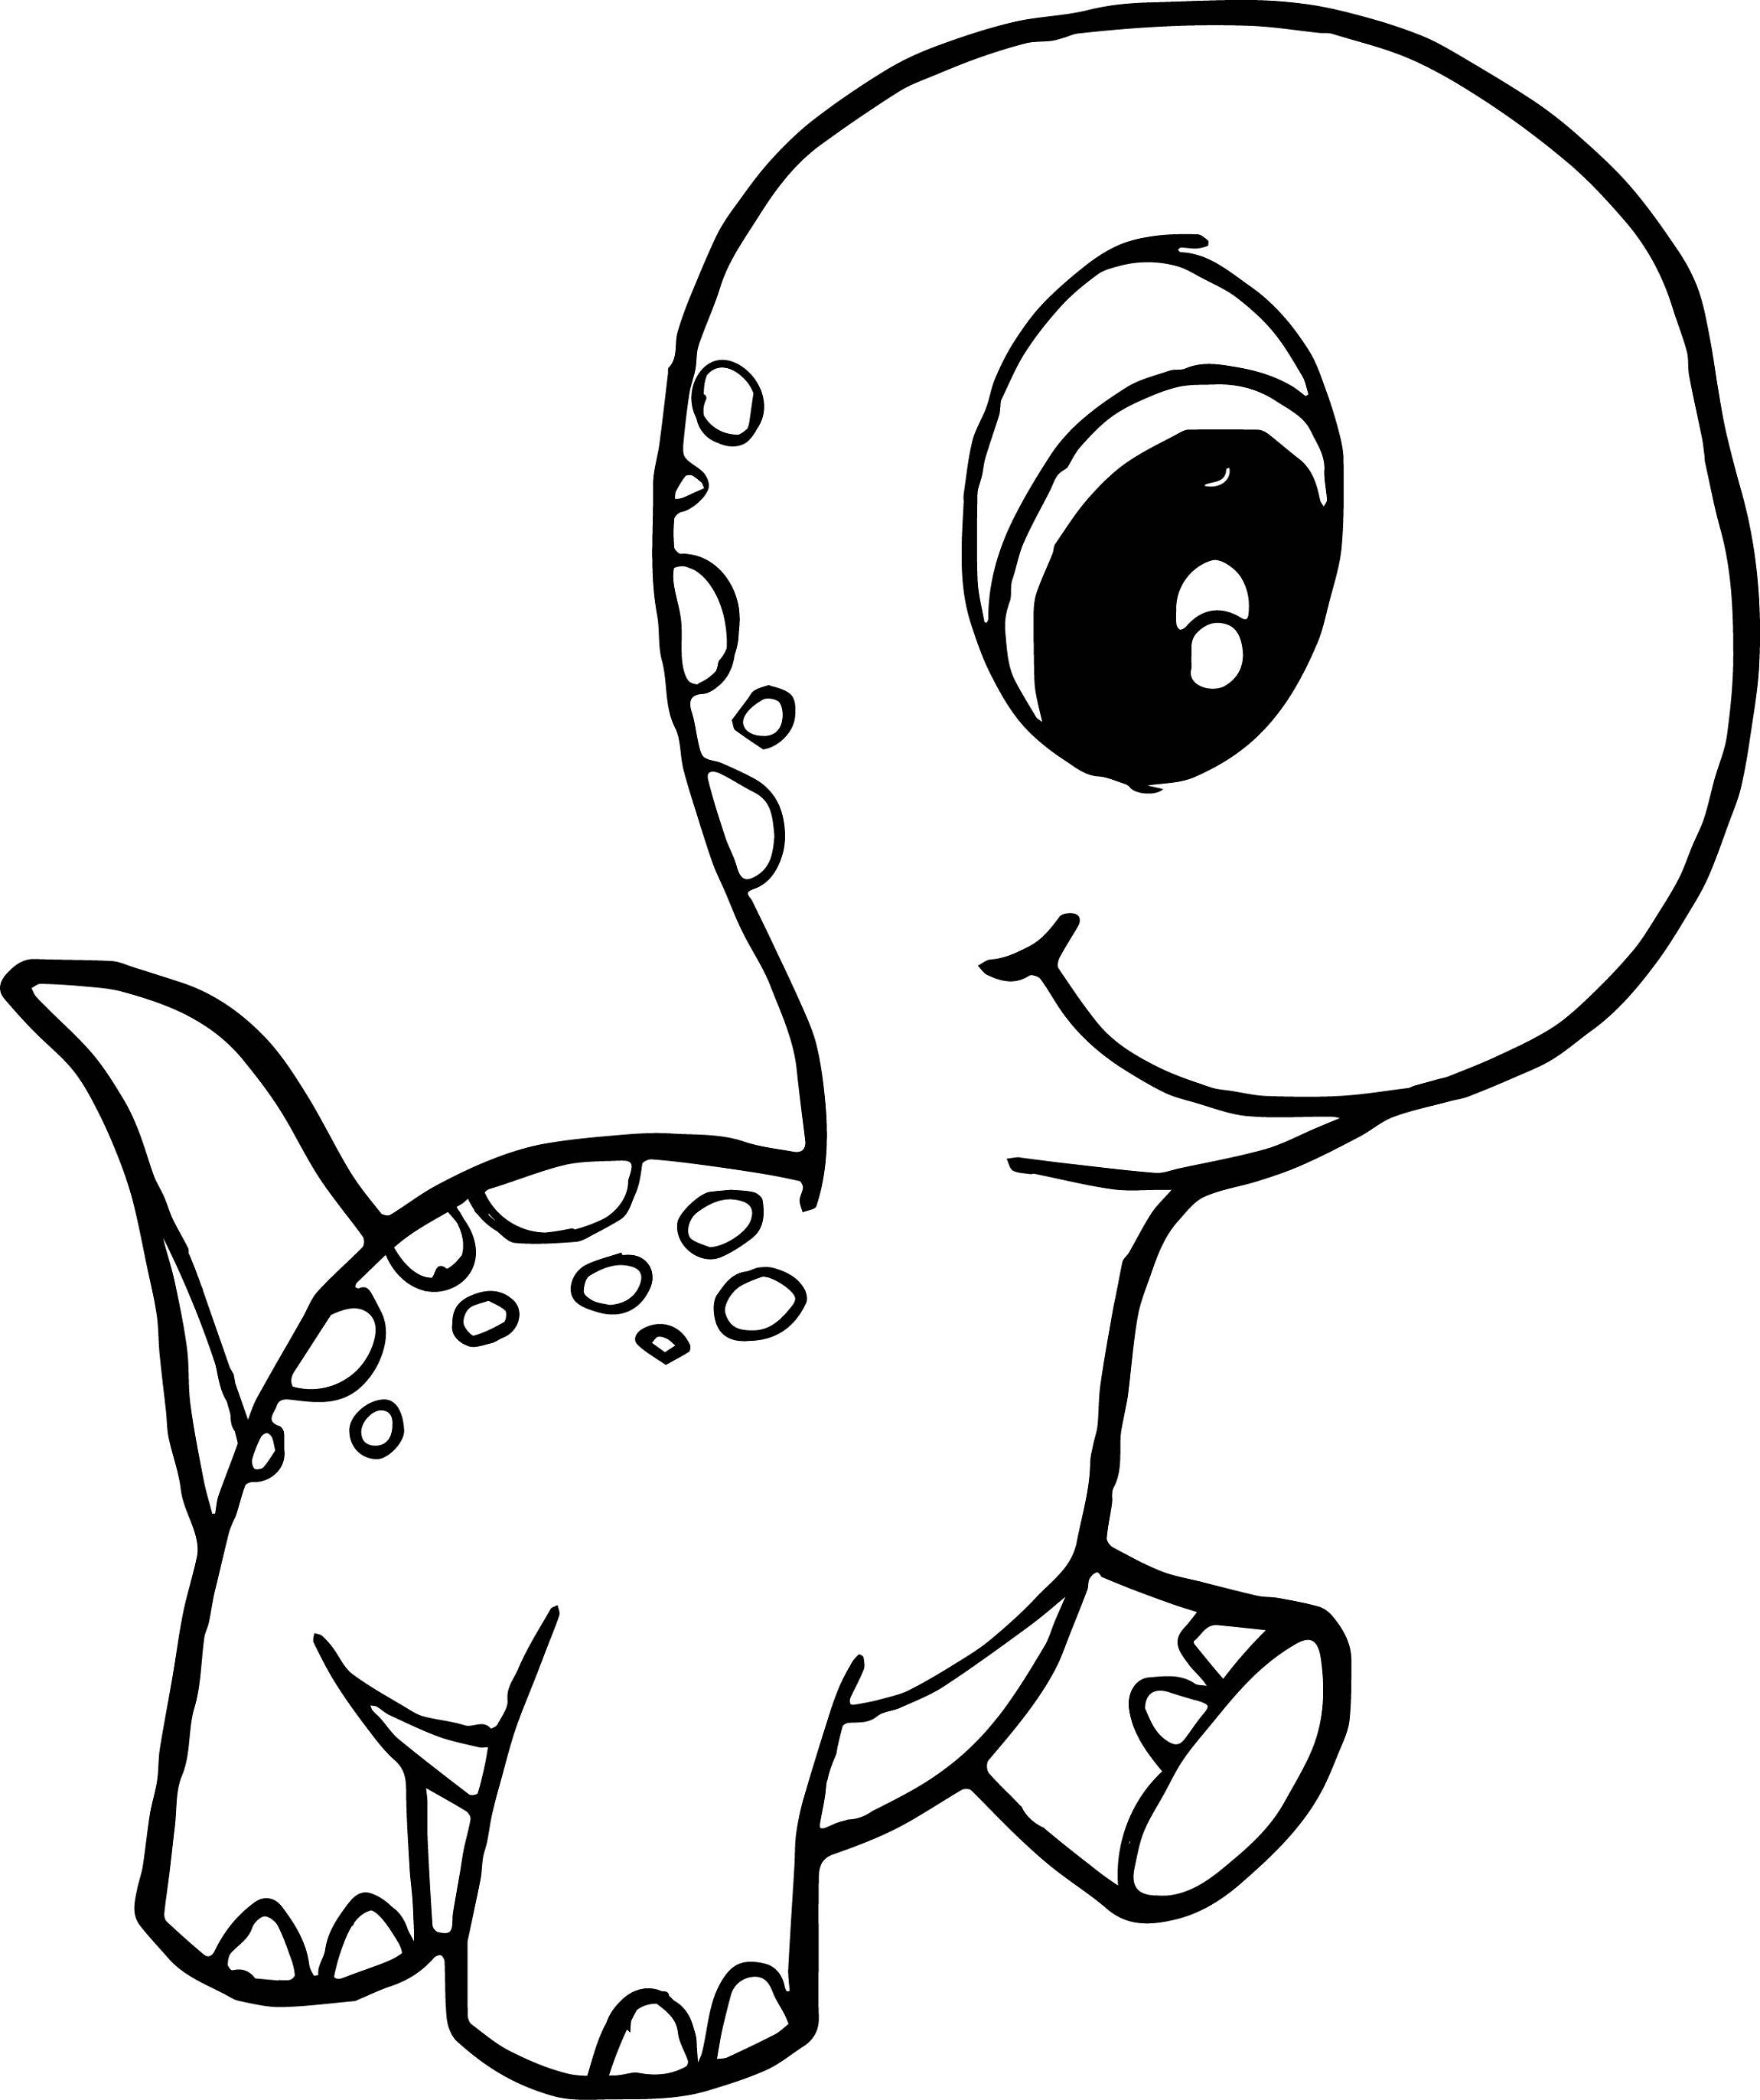 baby animals to color baby dinosaur coloring pages for preschoolers dinosaur color to animals baby